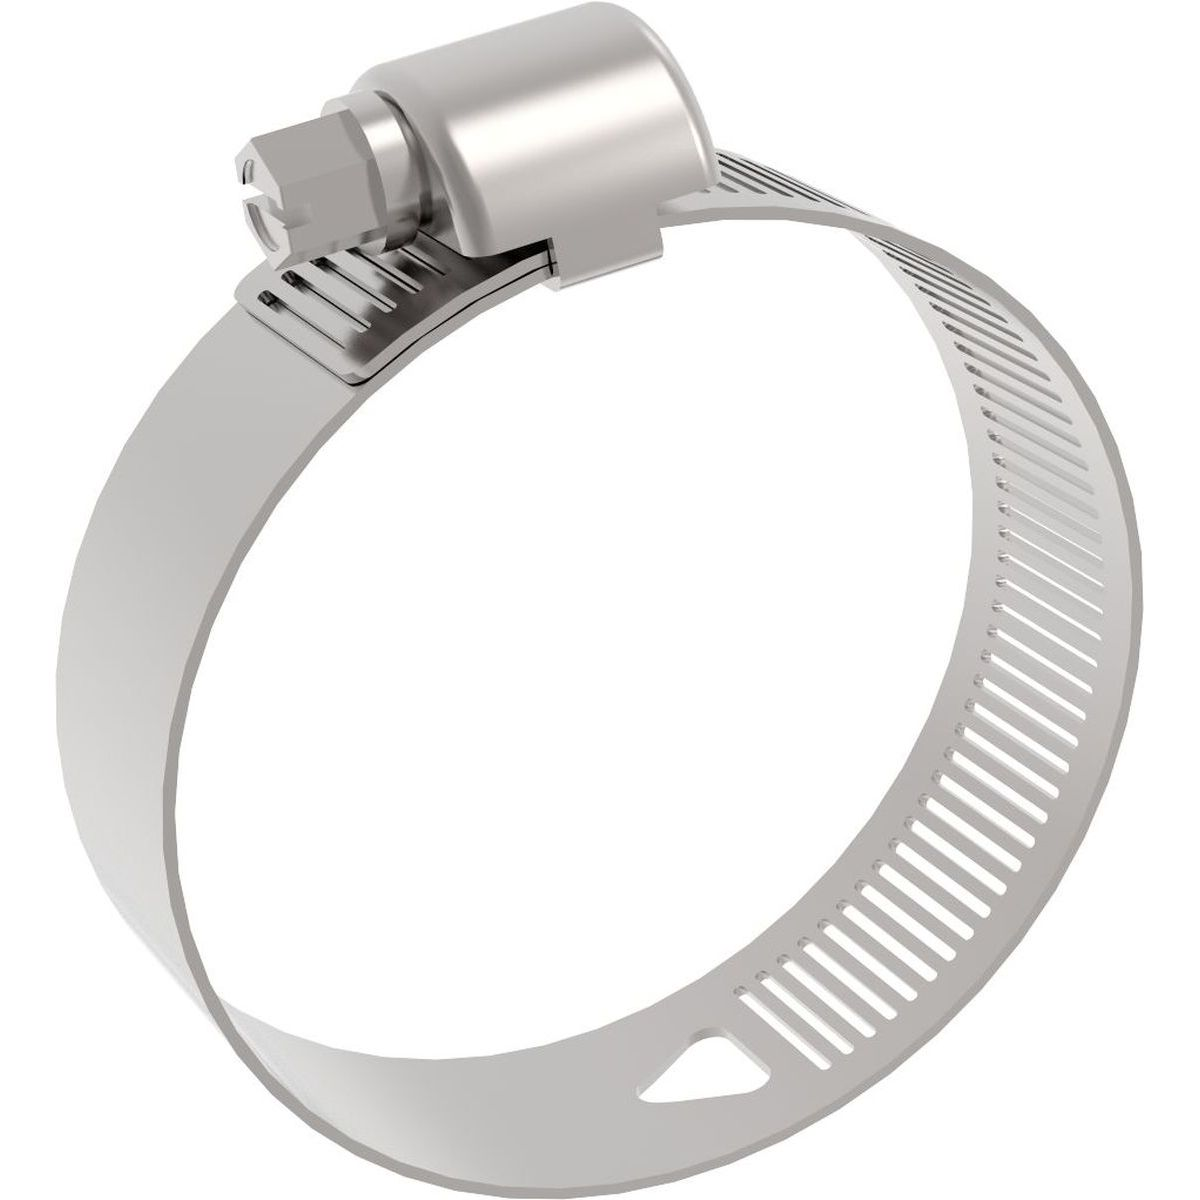 Impact Recovery Rings - ZERO CIVIL